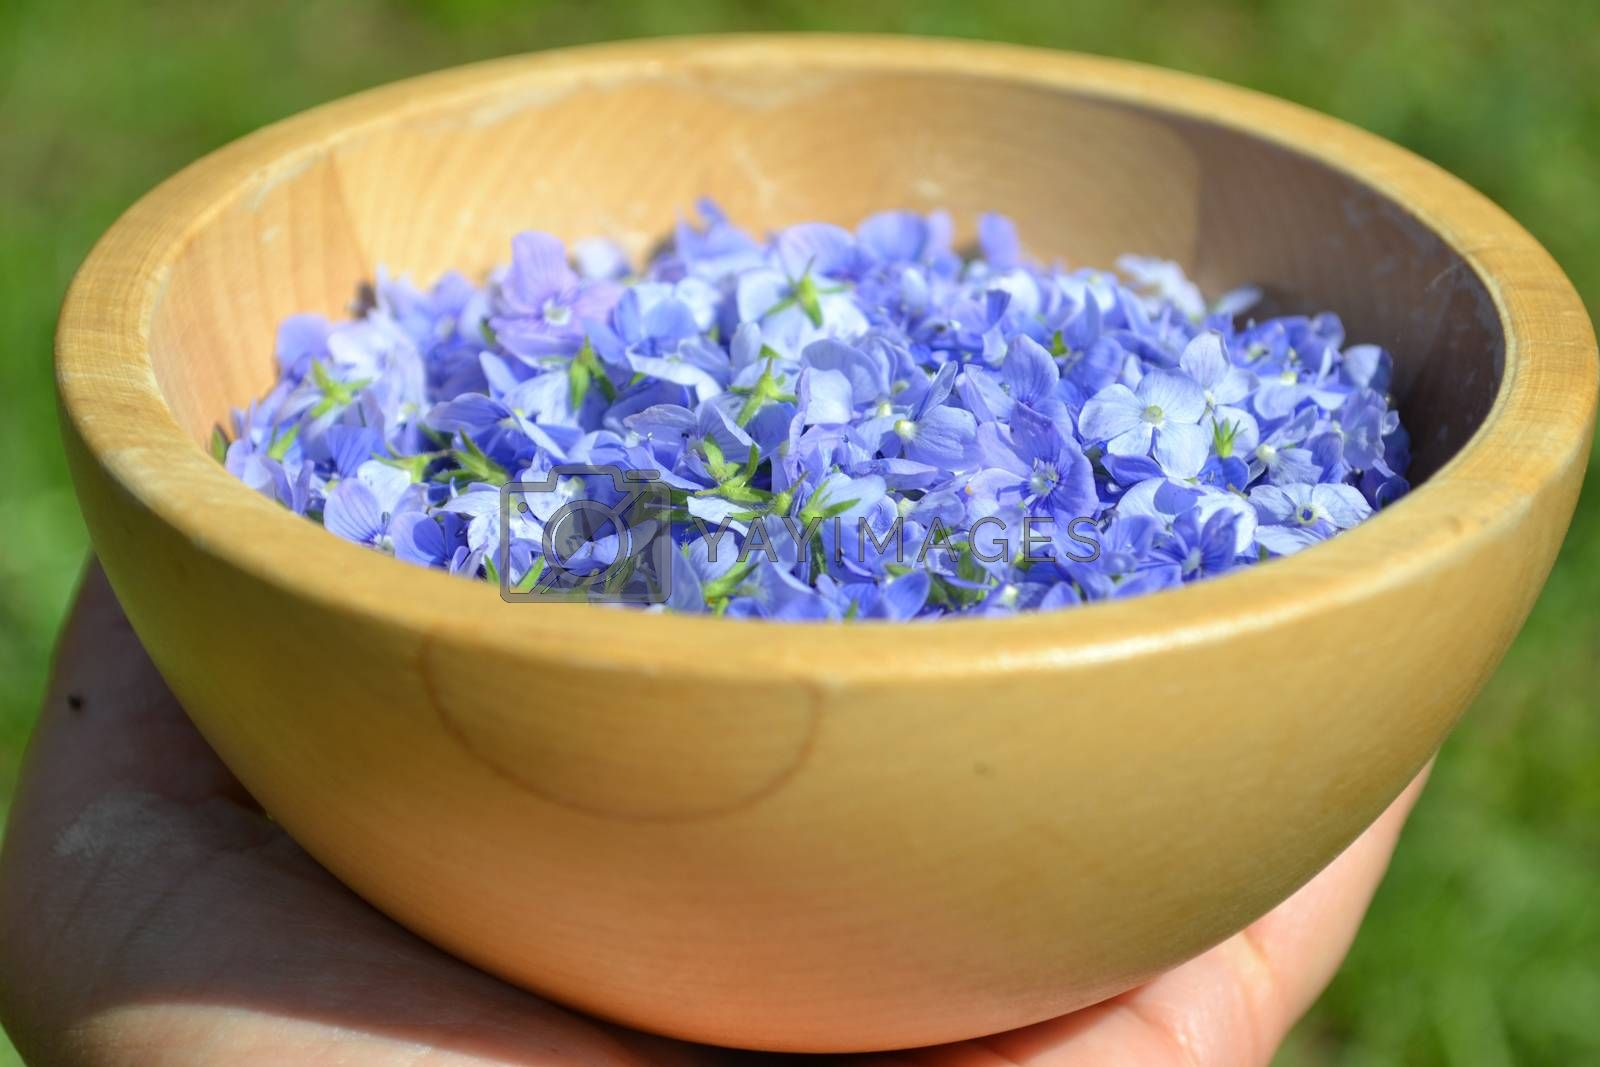 Hand holding a wooden bowl with blue flowers